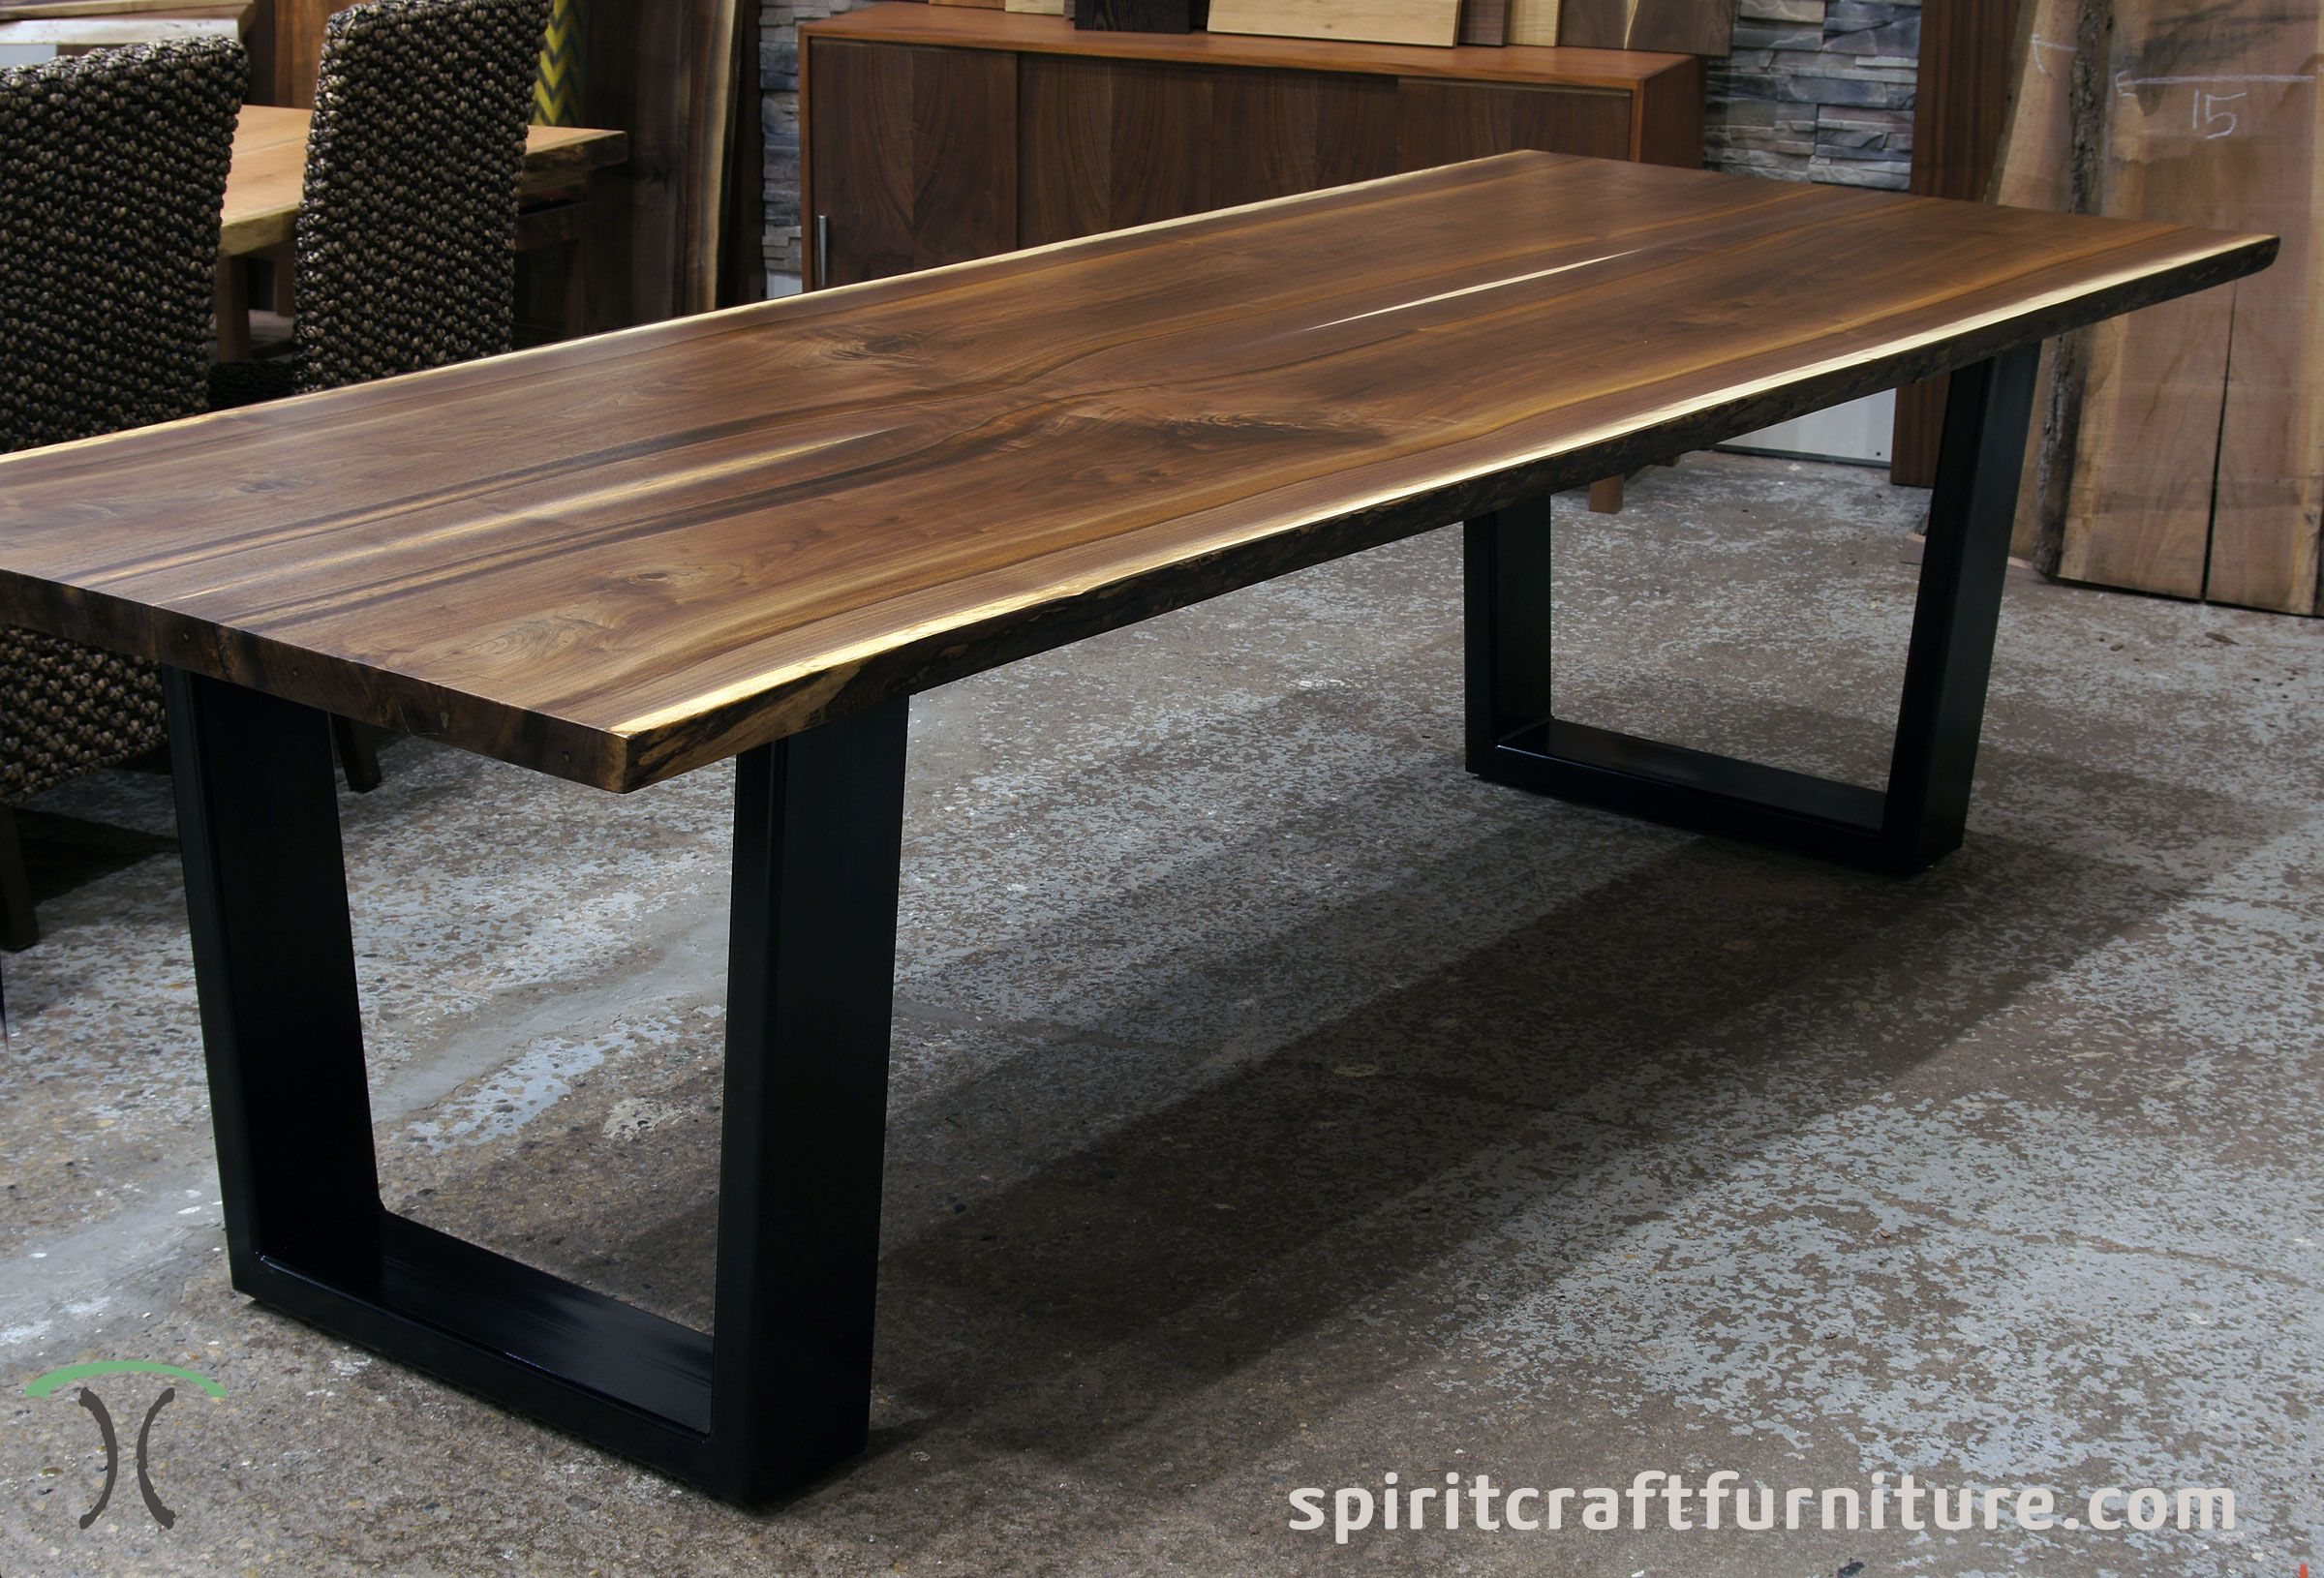 Black walnut live edge table with thick welded steel trapezoid legs handcrafted at chicago area furniture store